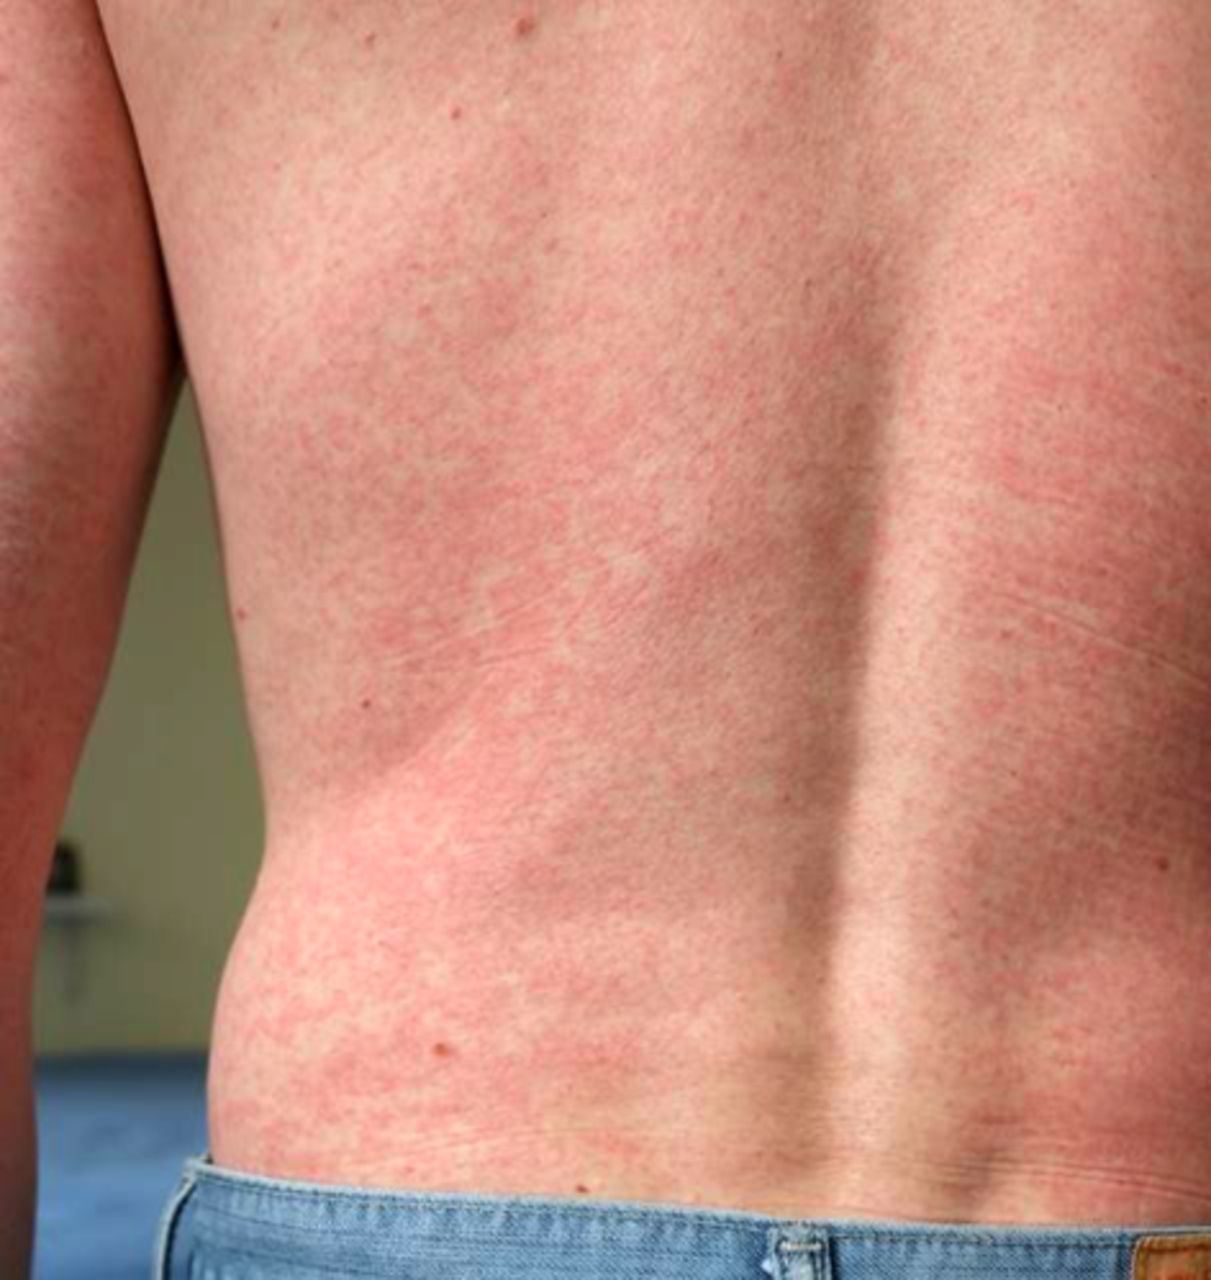 How To Identify A Zika Rash? Signs You Should Watch For ...